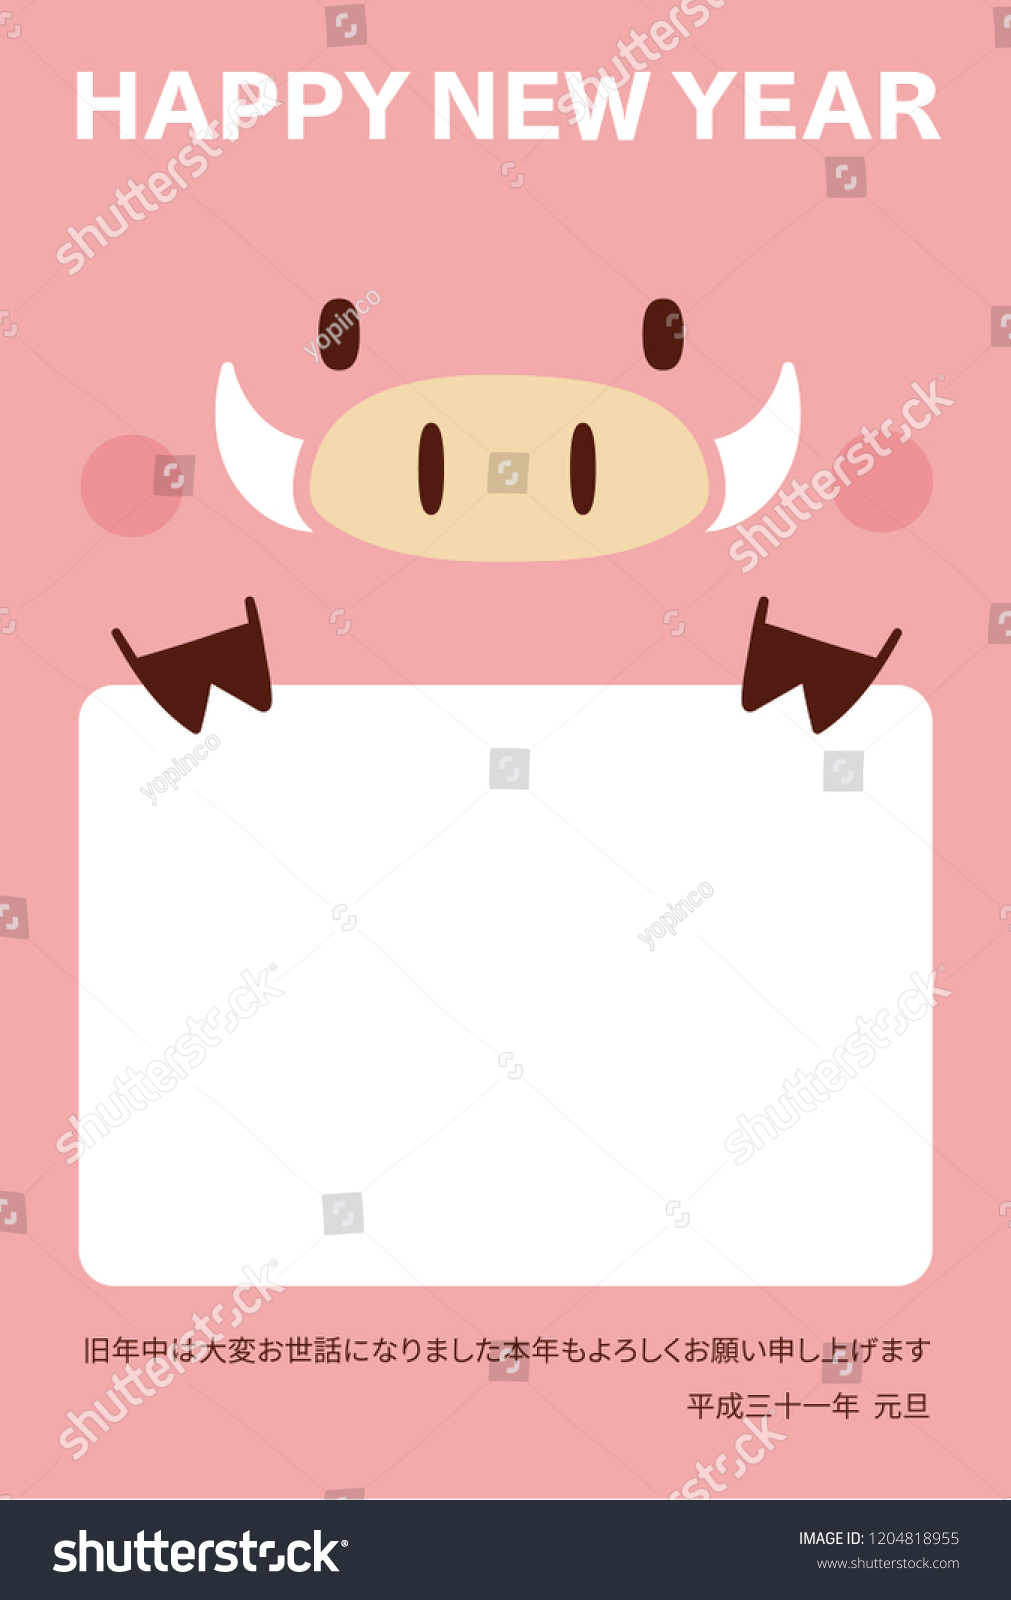 2019 New Years Card Featuring Boar Stock Vector (Royalty